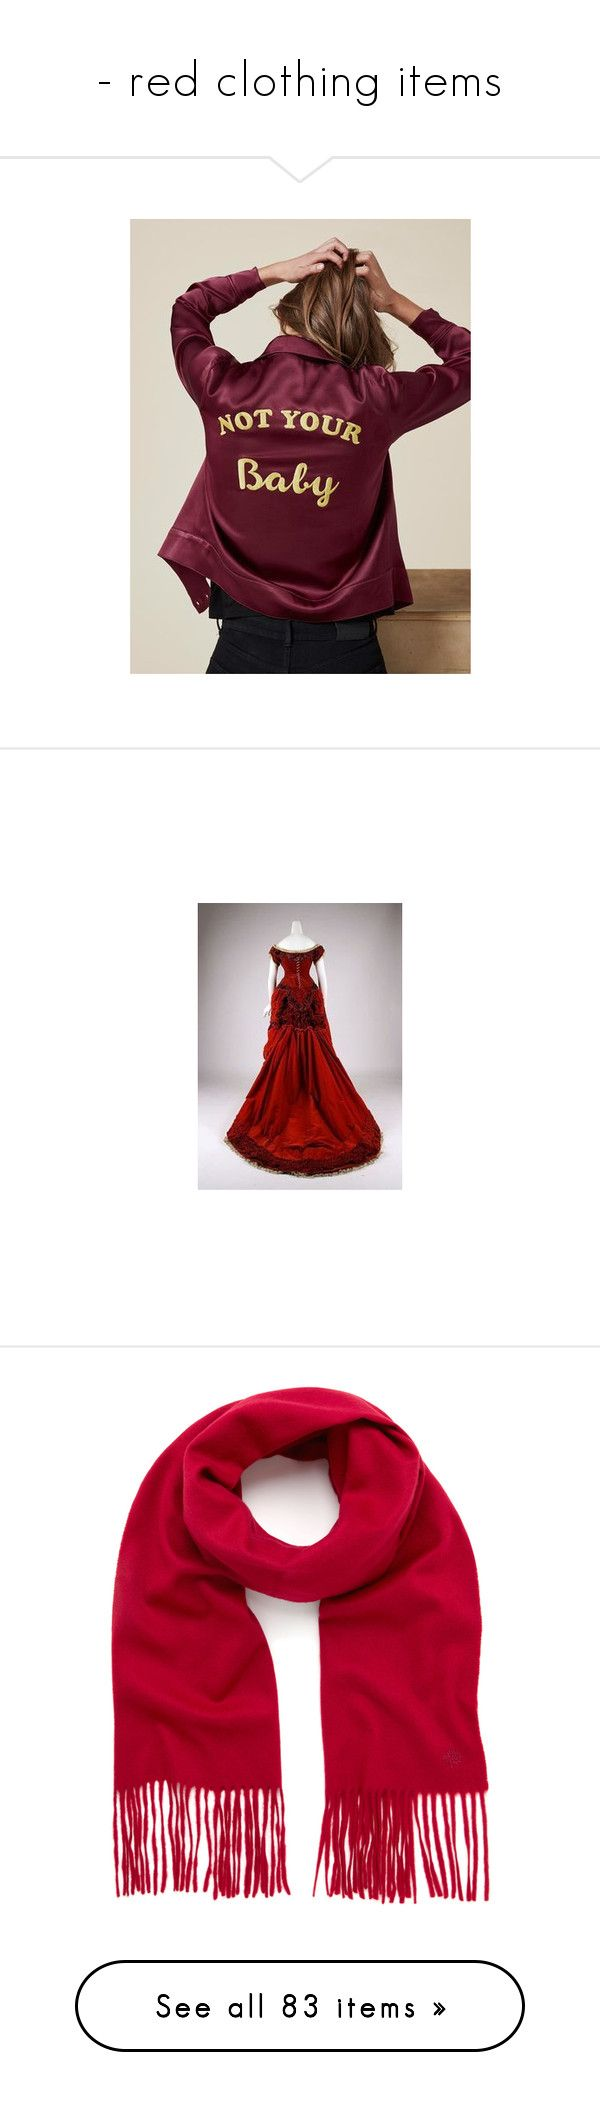 """""""- red clothing items"""" by apollos-g3ms ❤ liked on Polyvore featuring dresses, accessories, scarves, berry red, cashmere scarves, cashmere wrap shawl, cashmere shawl, wrap shawl, red scarves and red"""